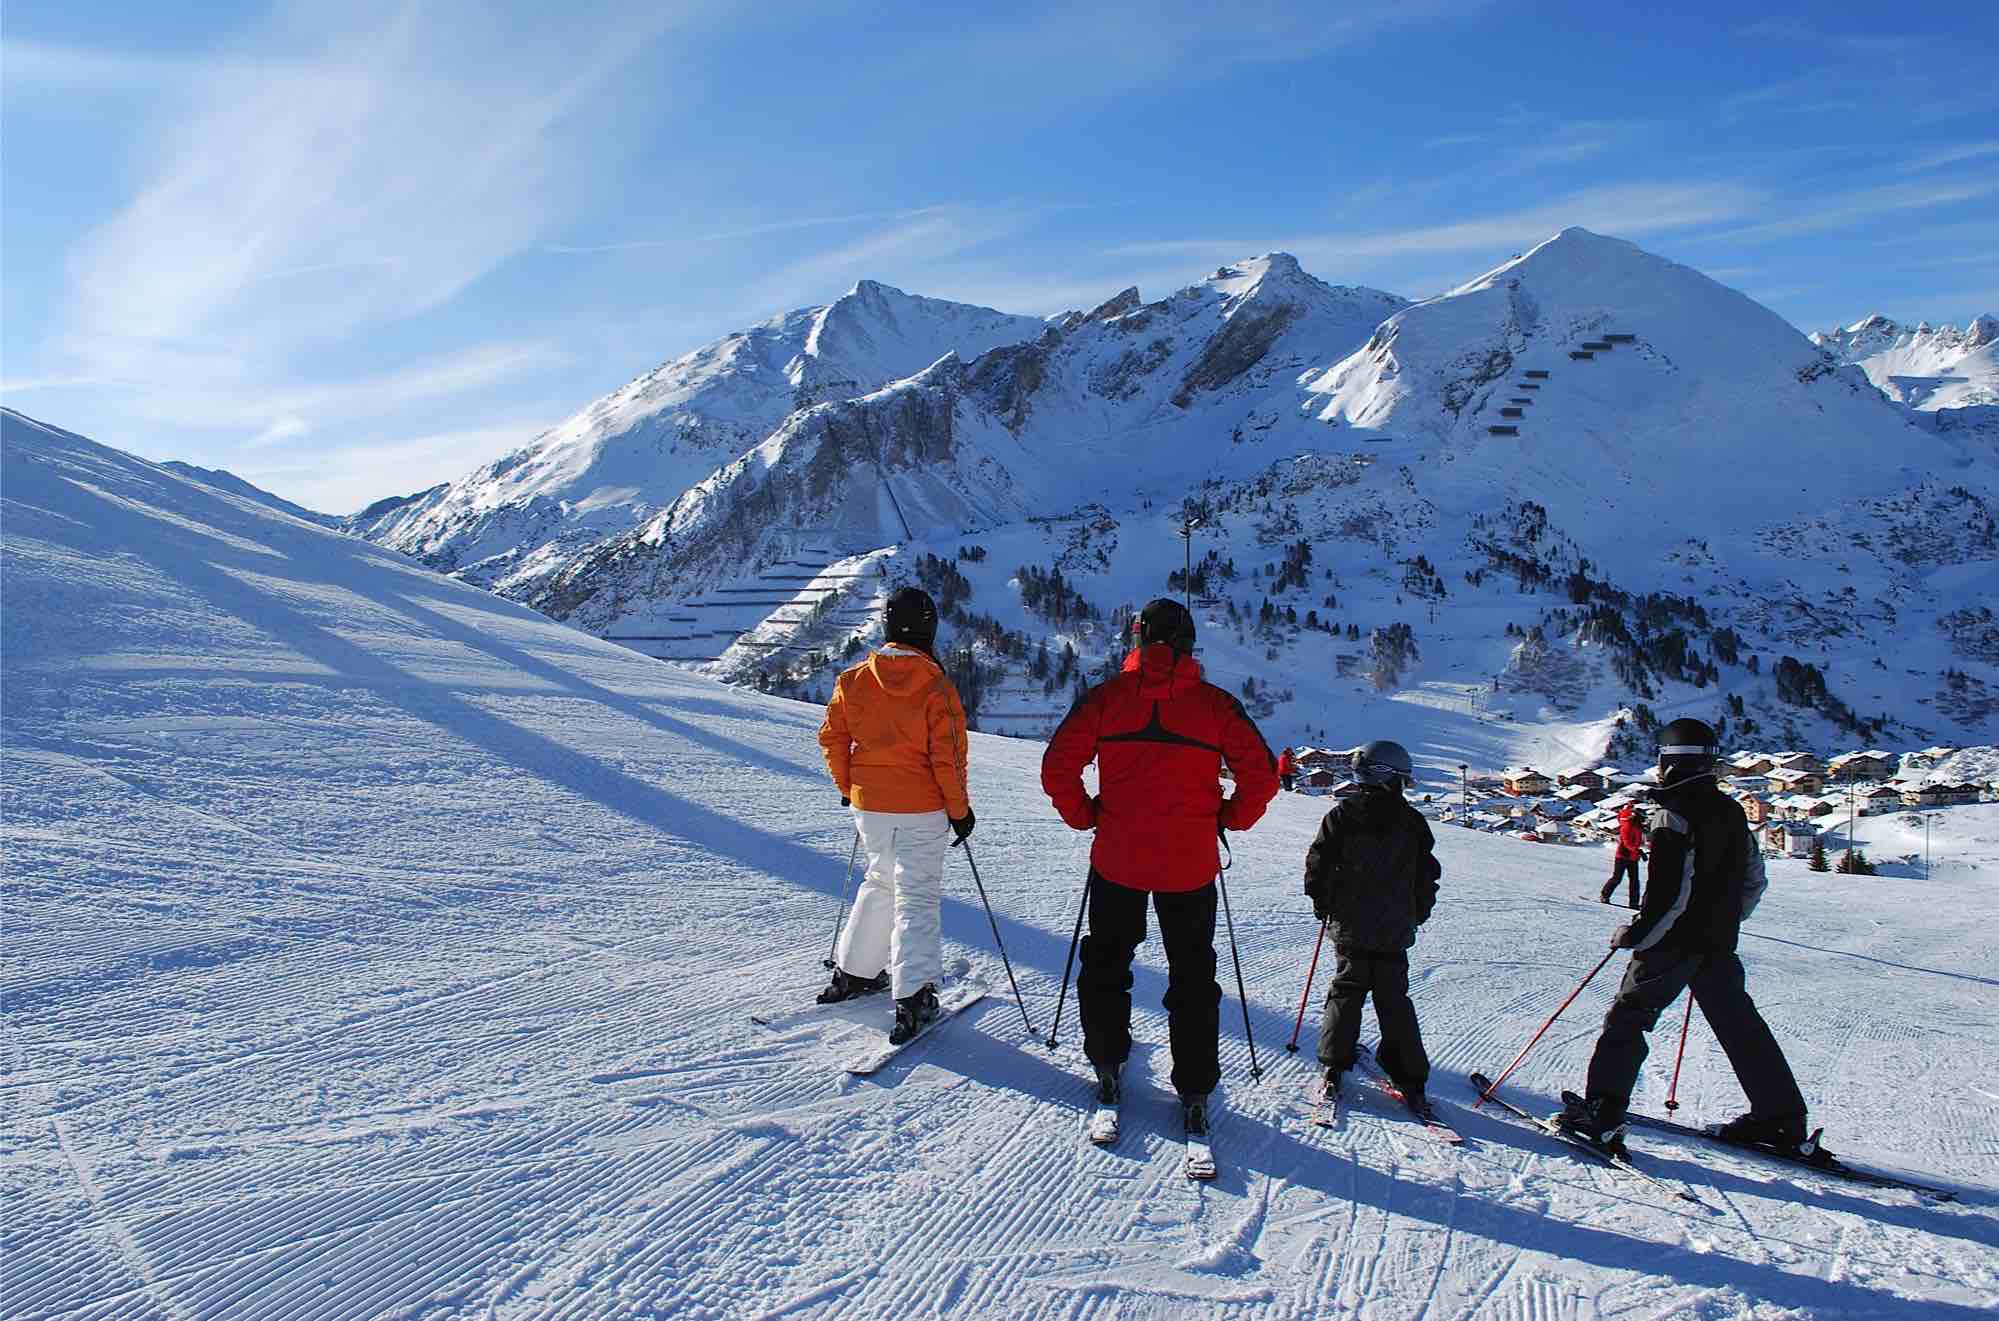 3/Skiing in the Alps